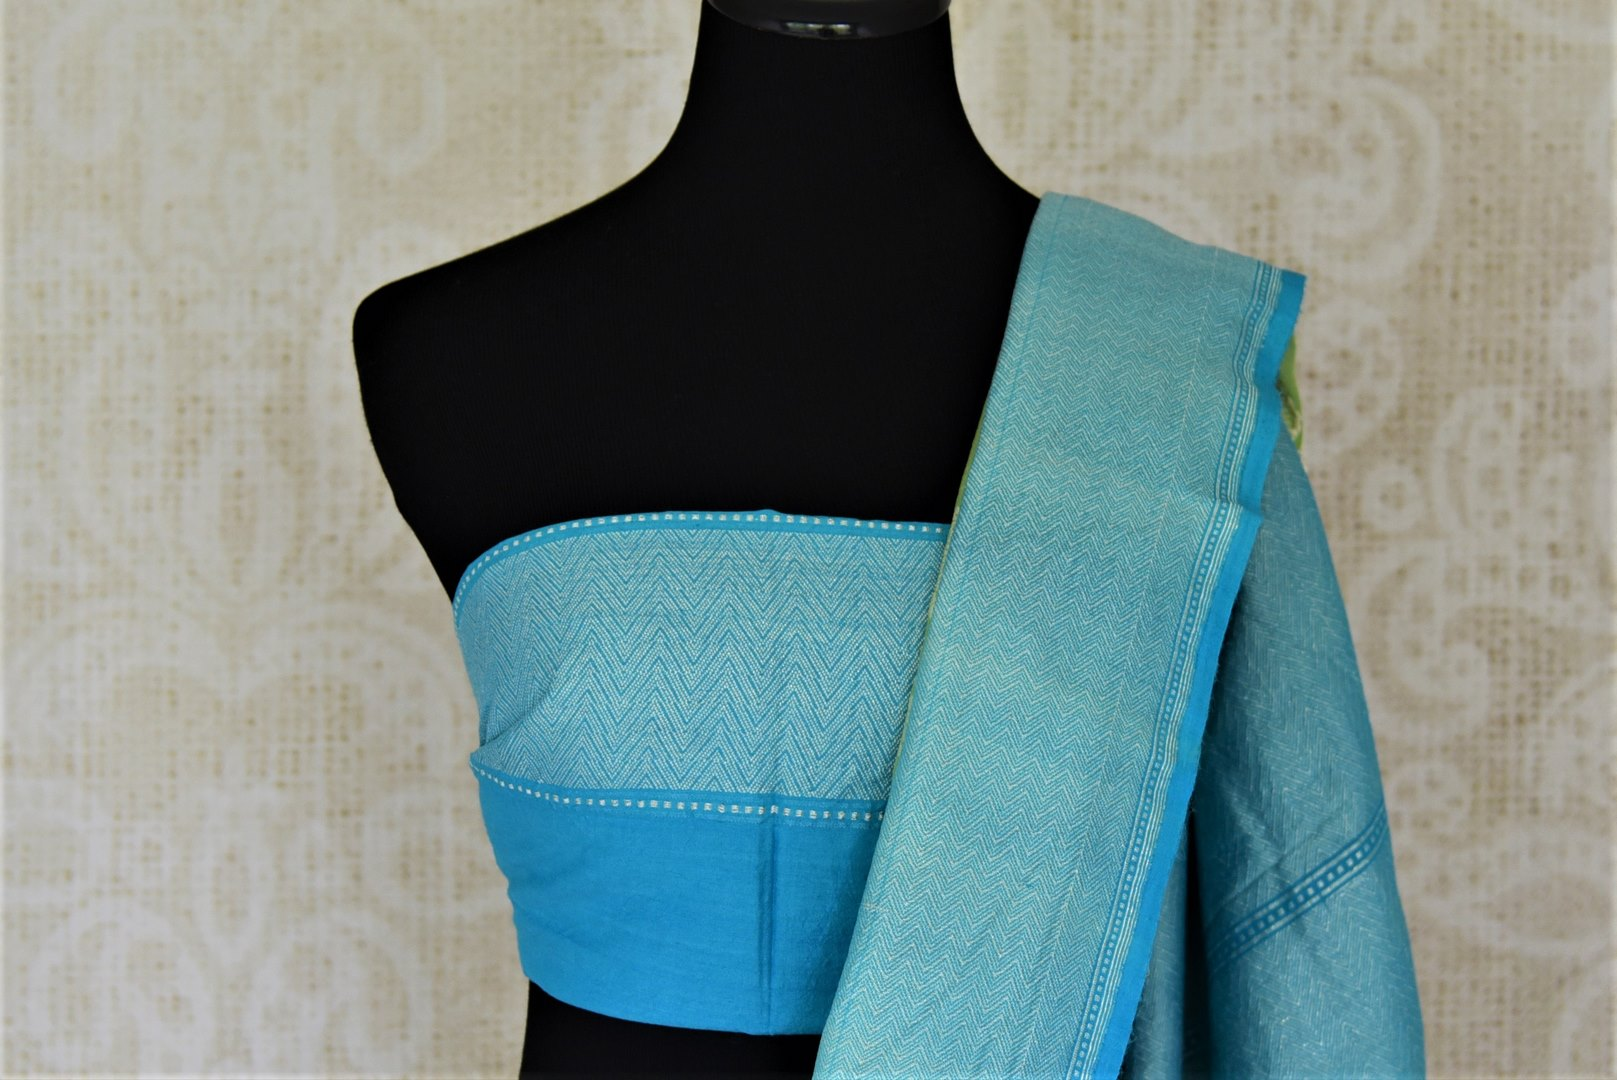 Shop light green muga Benarasi saree online in USA with blue zari border and marigold buta. Make your saree wardrobe rich and colorful with stunning handwoven sarees, pure silk sarees, designer sarees from Pure Elegance Indian clothing store in USA.-blouse pallu